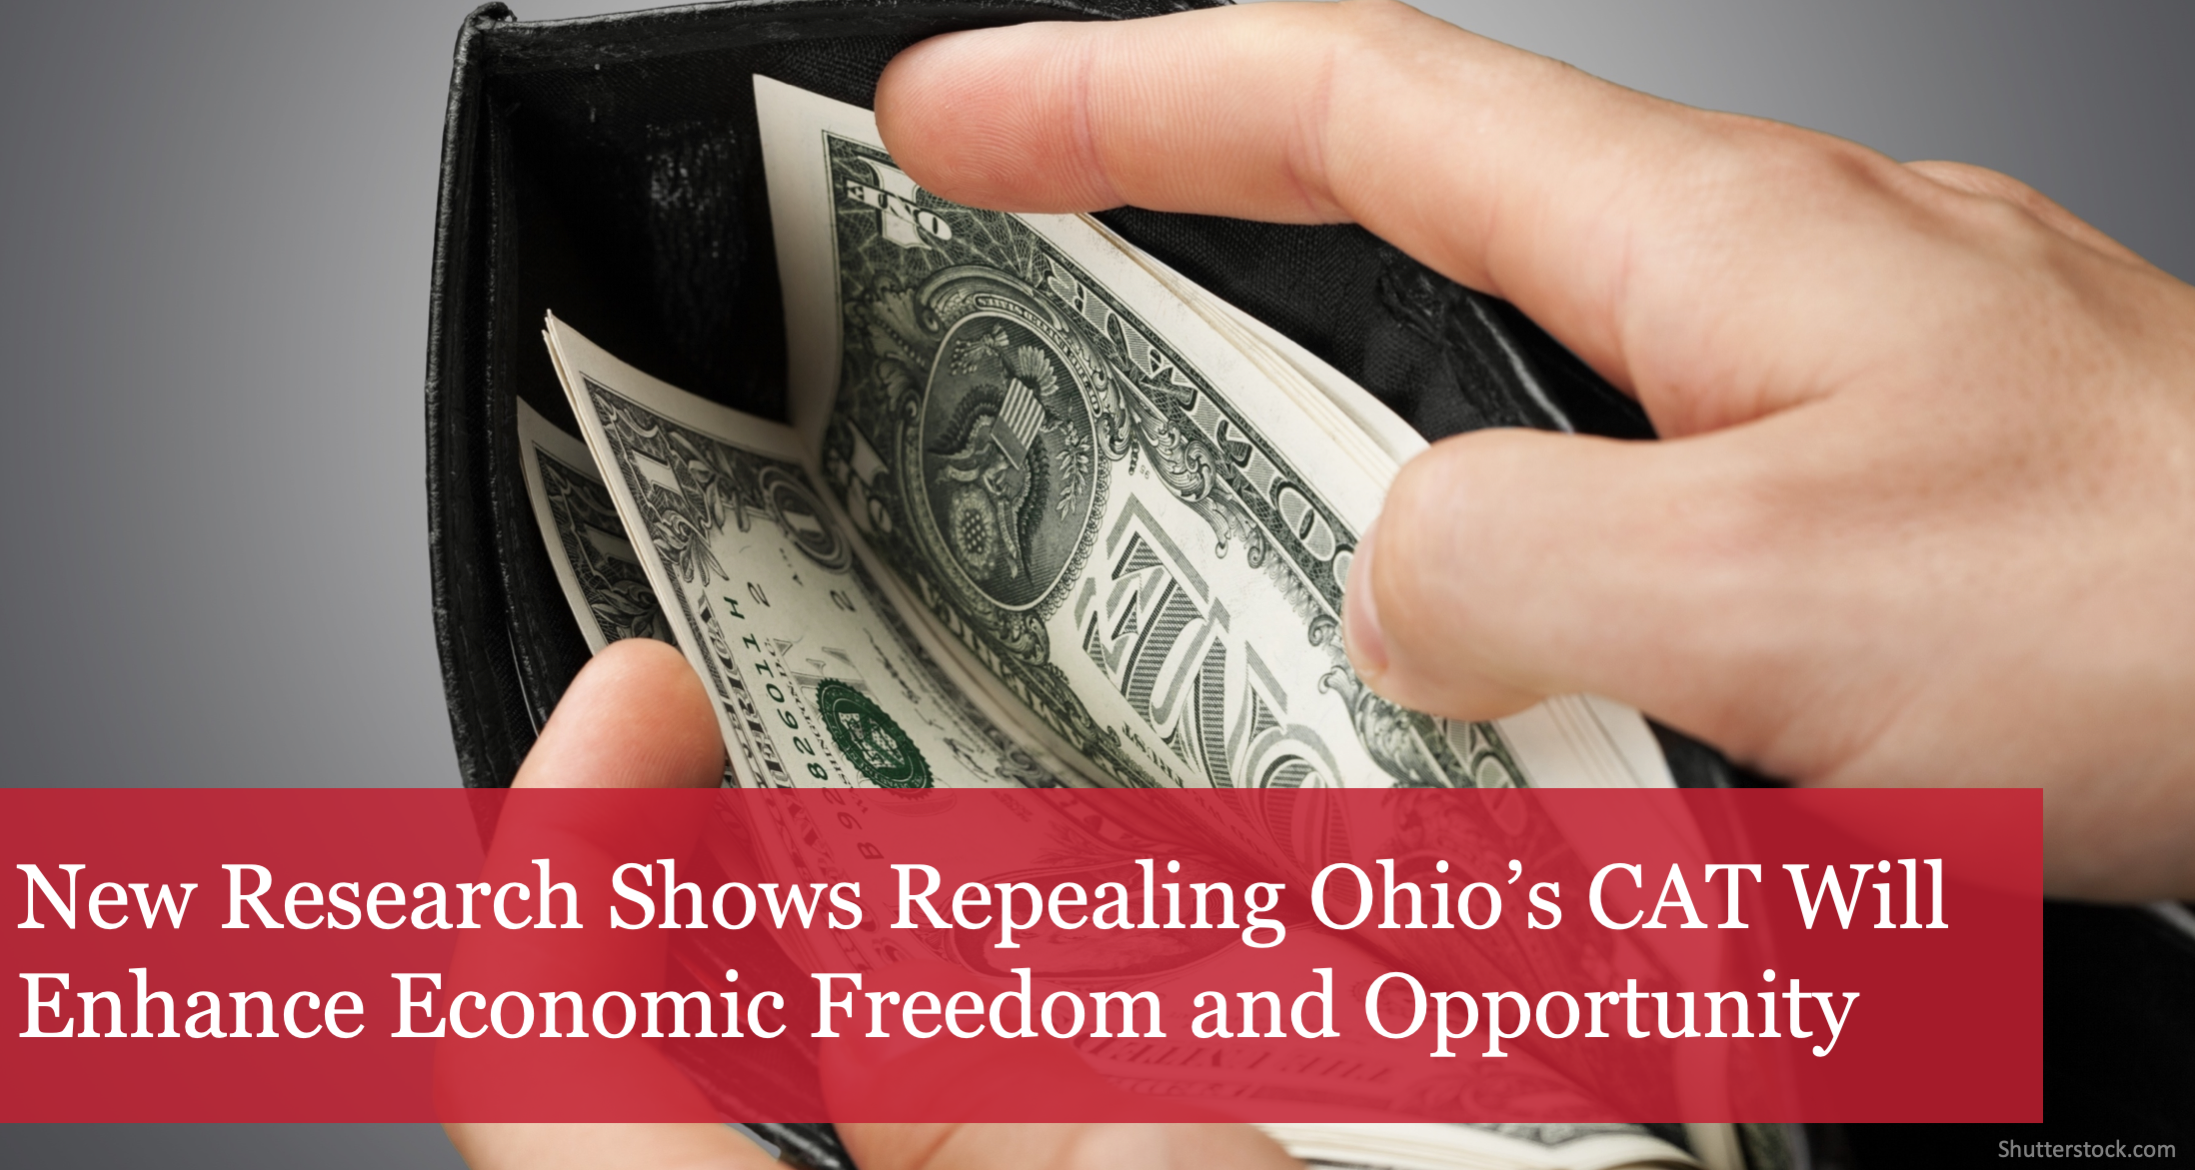 The Buckeye Institute: Repealing Ohio's CAT Will Enhance Economic Freedom and Opportunity